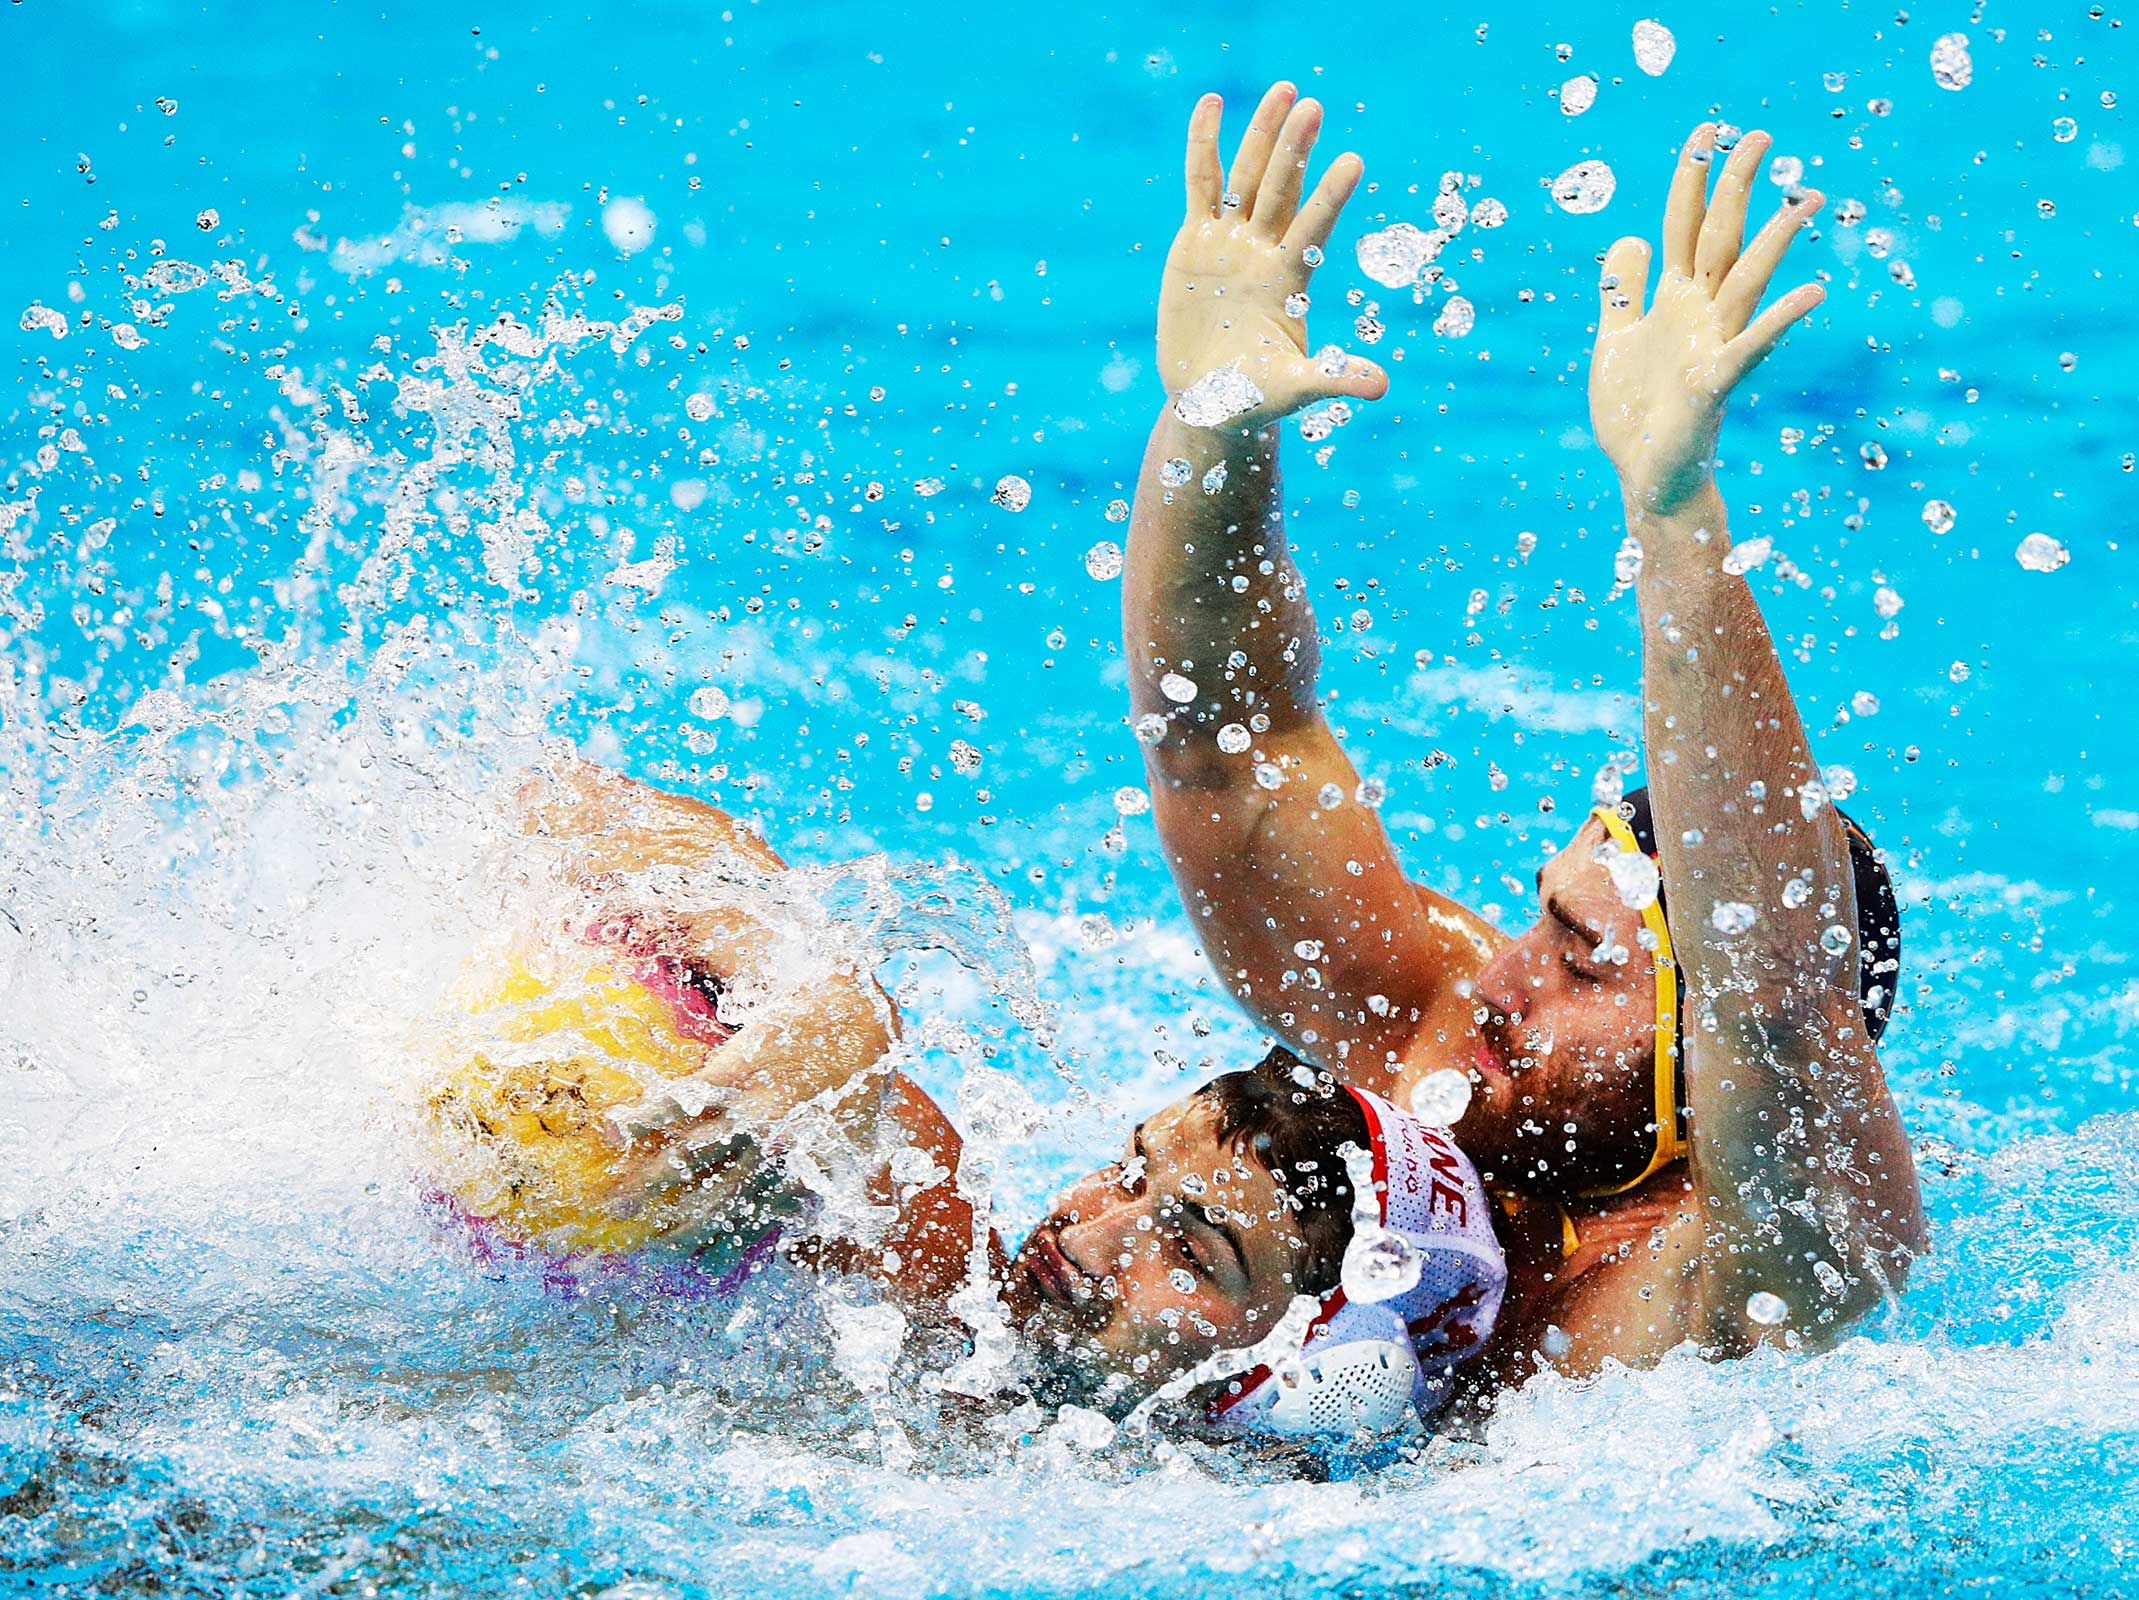 Men's Waterpolo - Preliminary Round - Group B